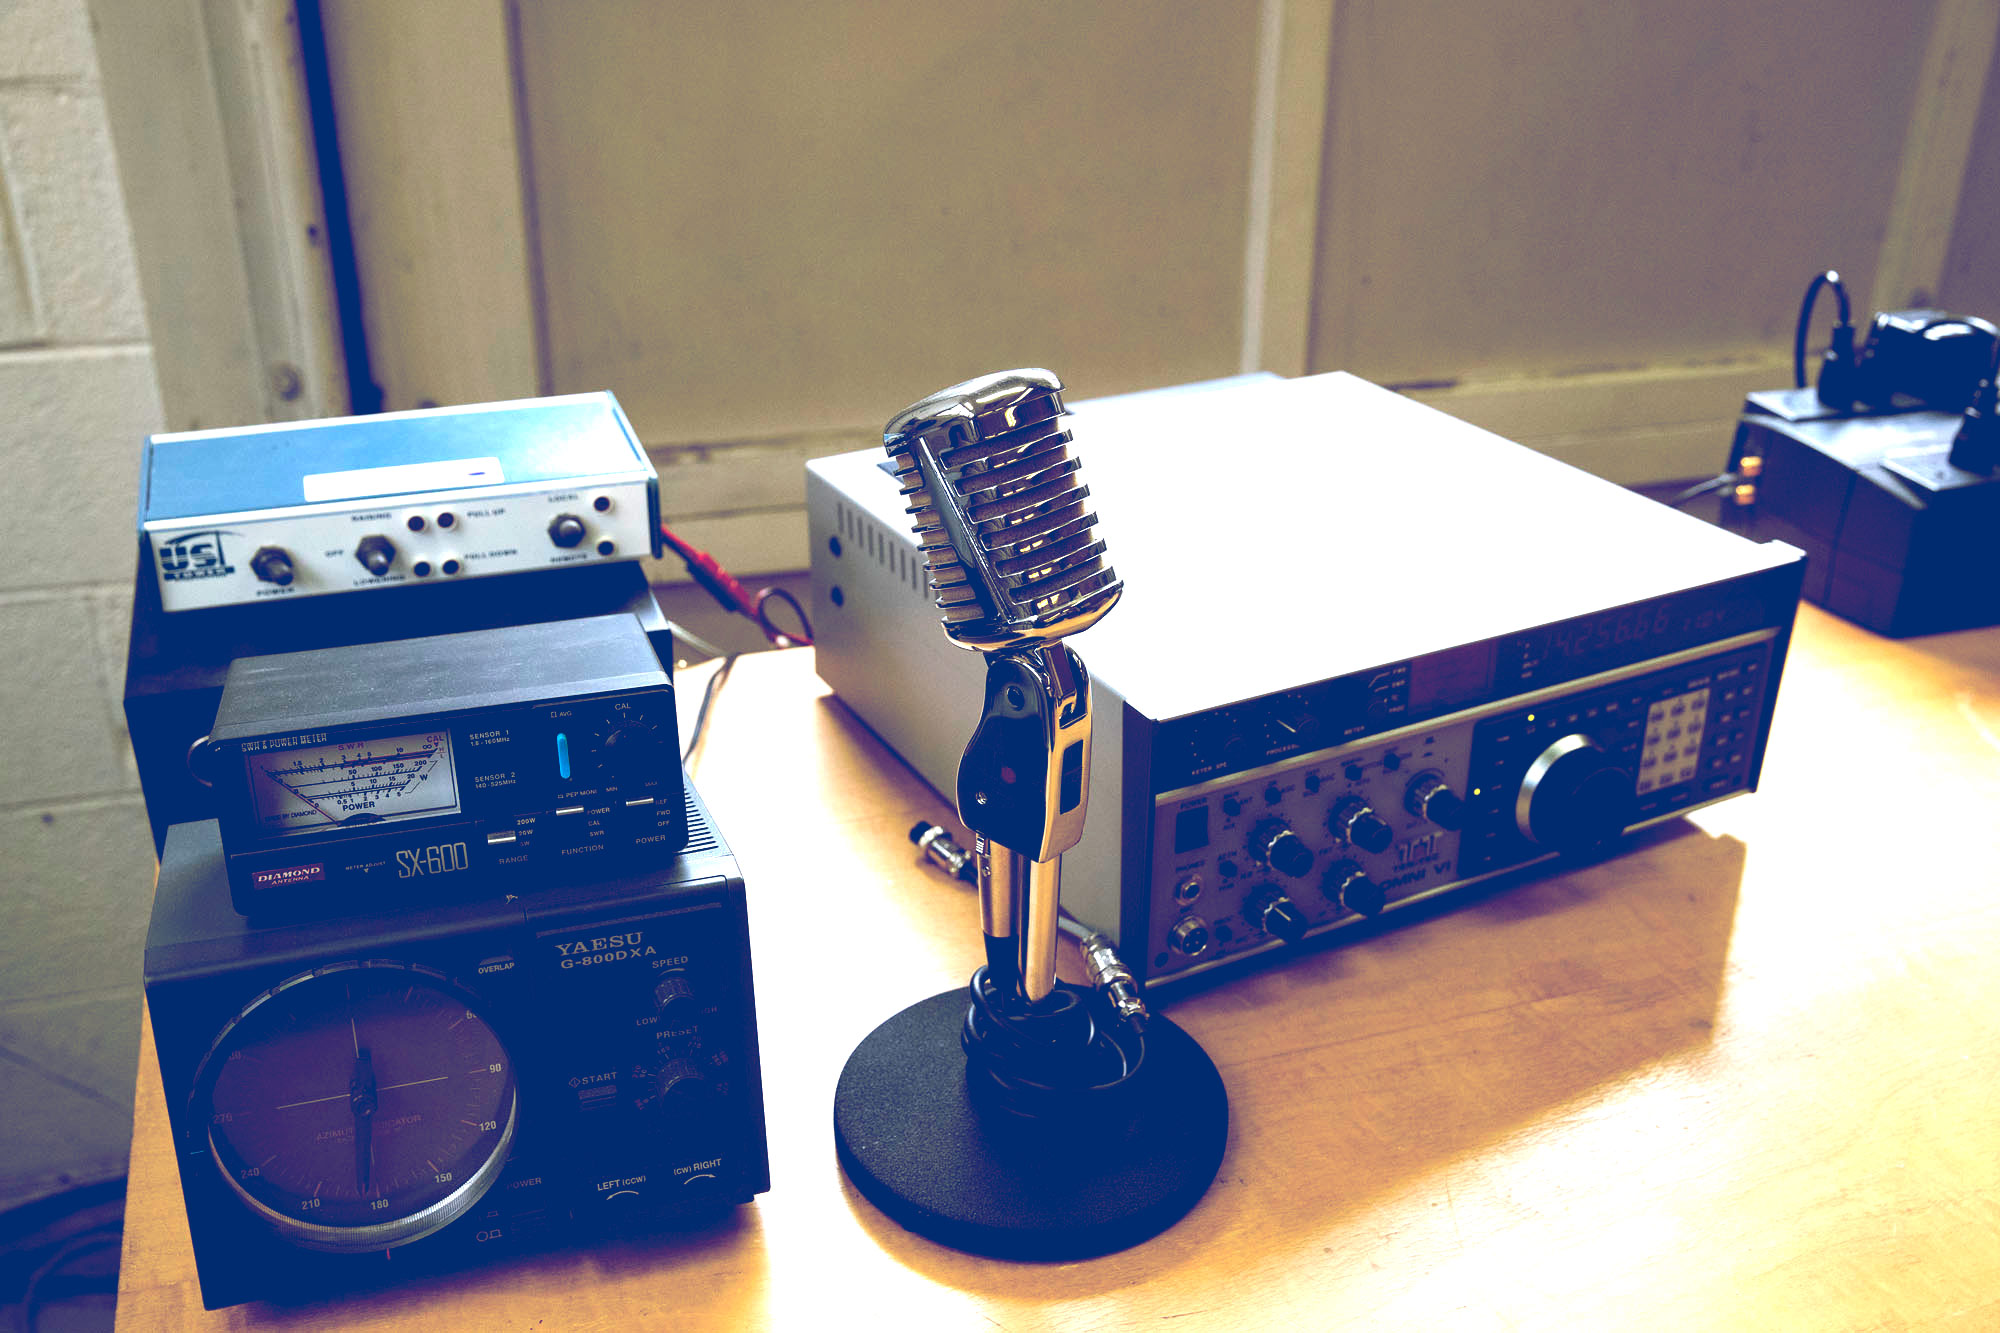 The UVA Amateur Radio Club's equipment is housed in the University's old nuclear reactor building.